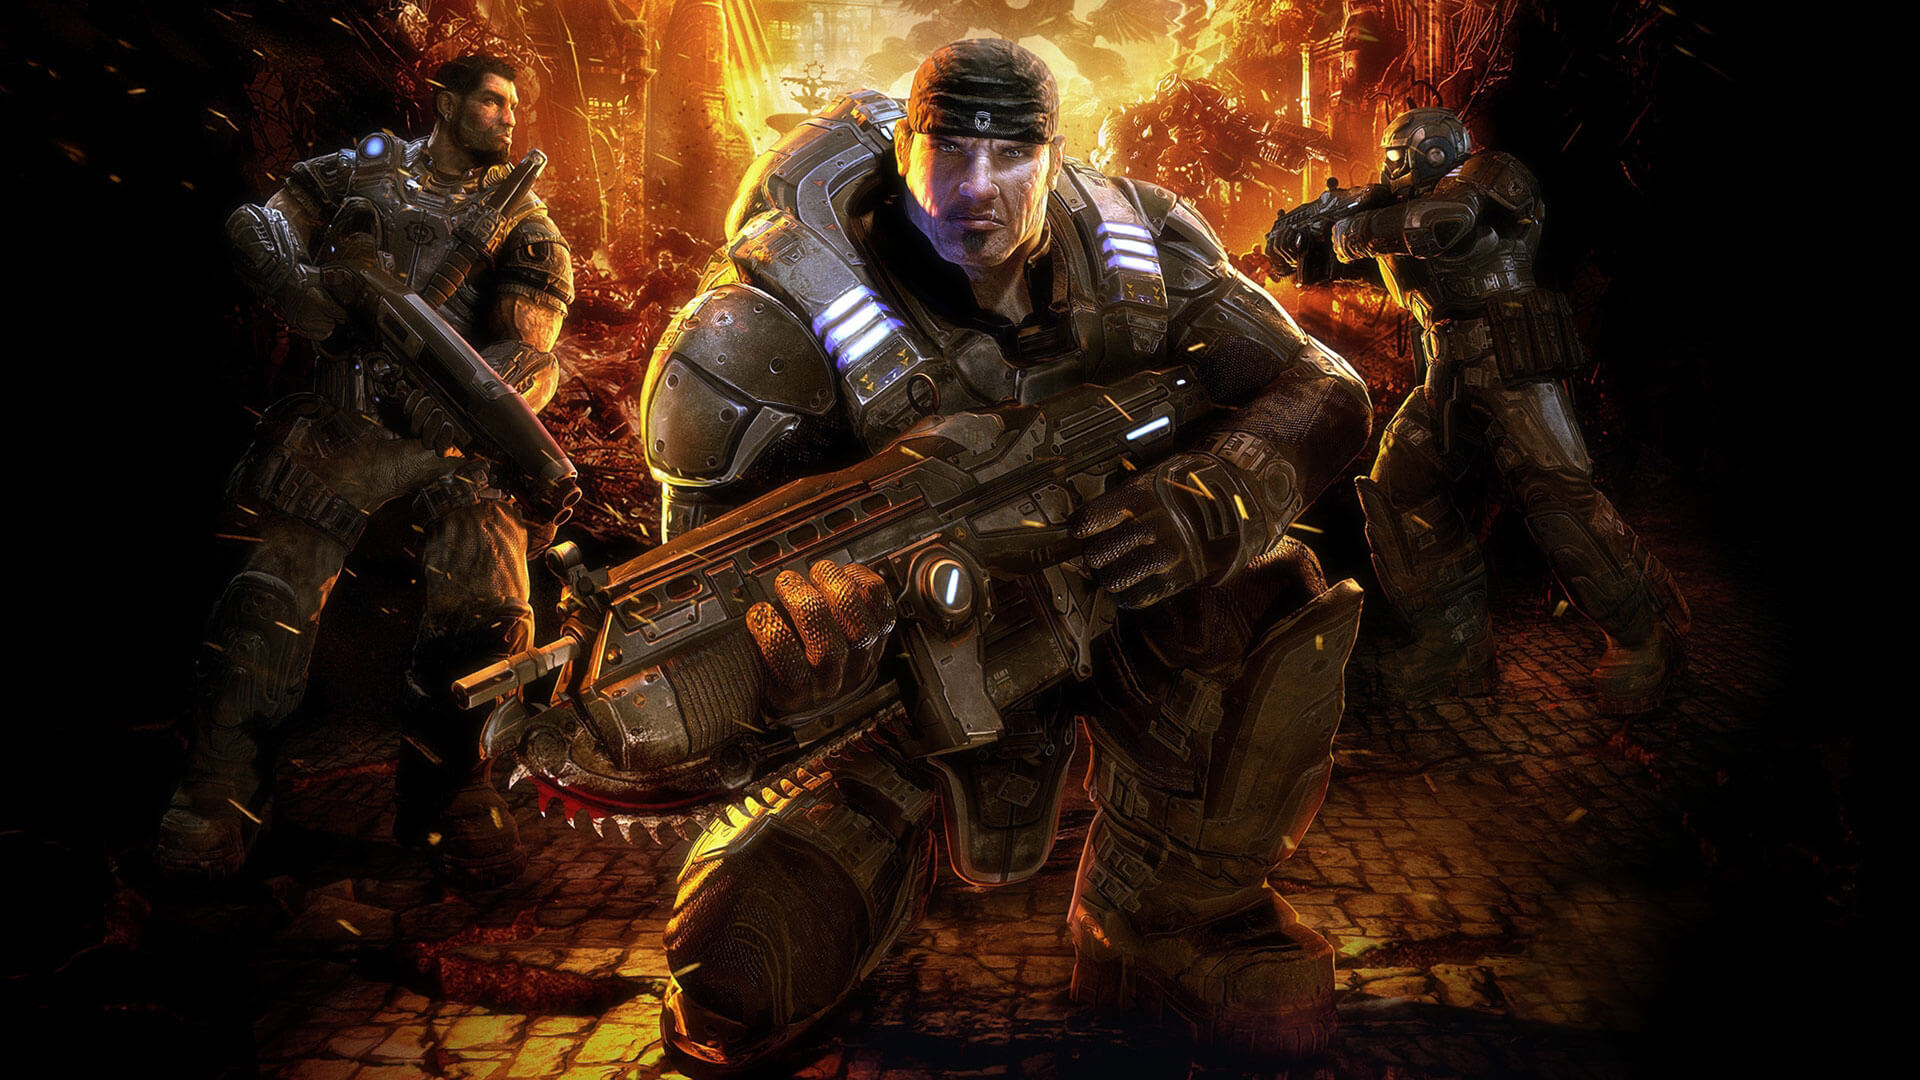 Cliff Bleszinski May Return to Gears of War